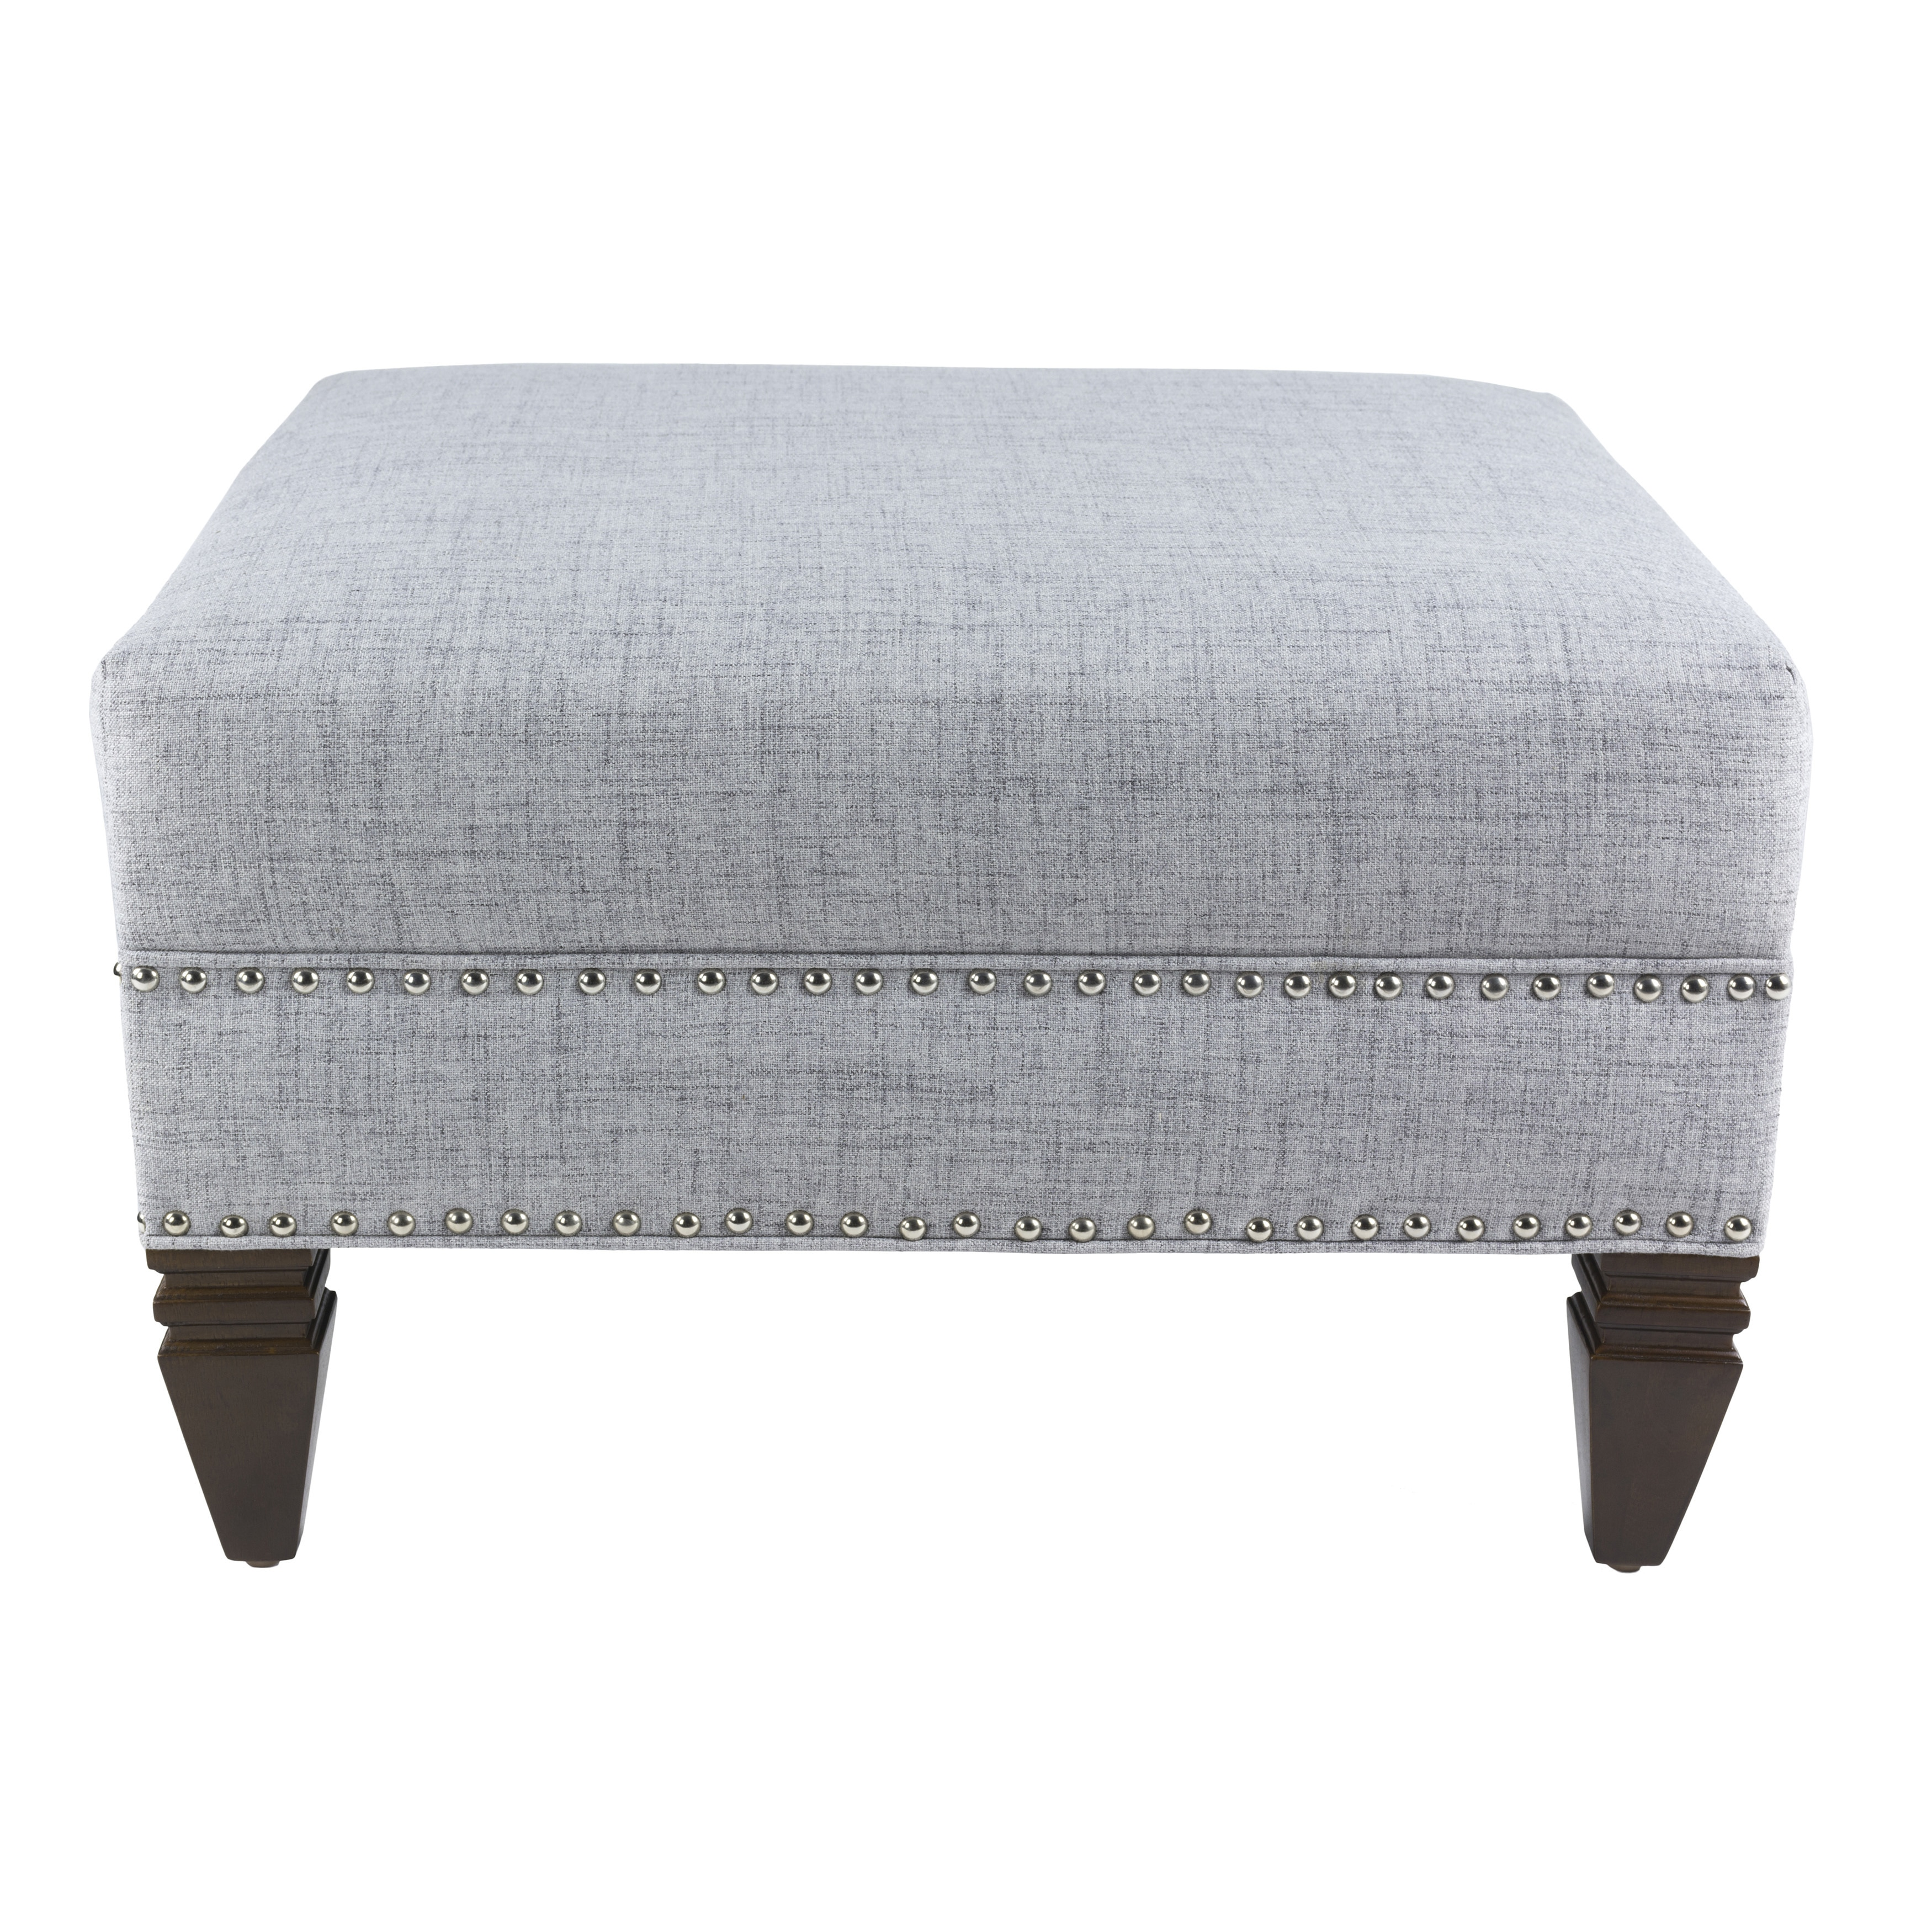 in pouffe designs nlo london denim footstool fa sosa square not modern blue seat me sapd distinct fabric ottoman products